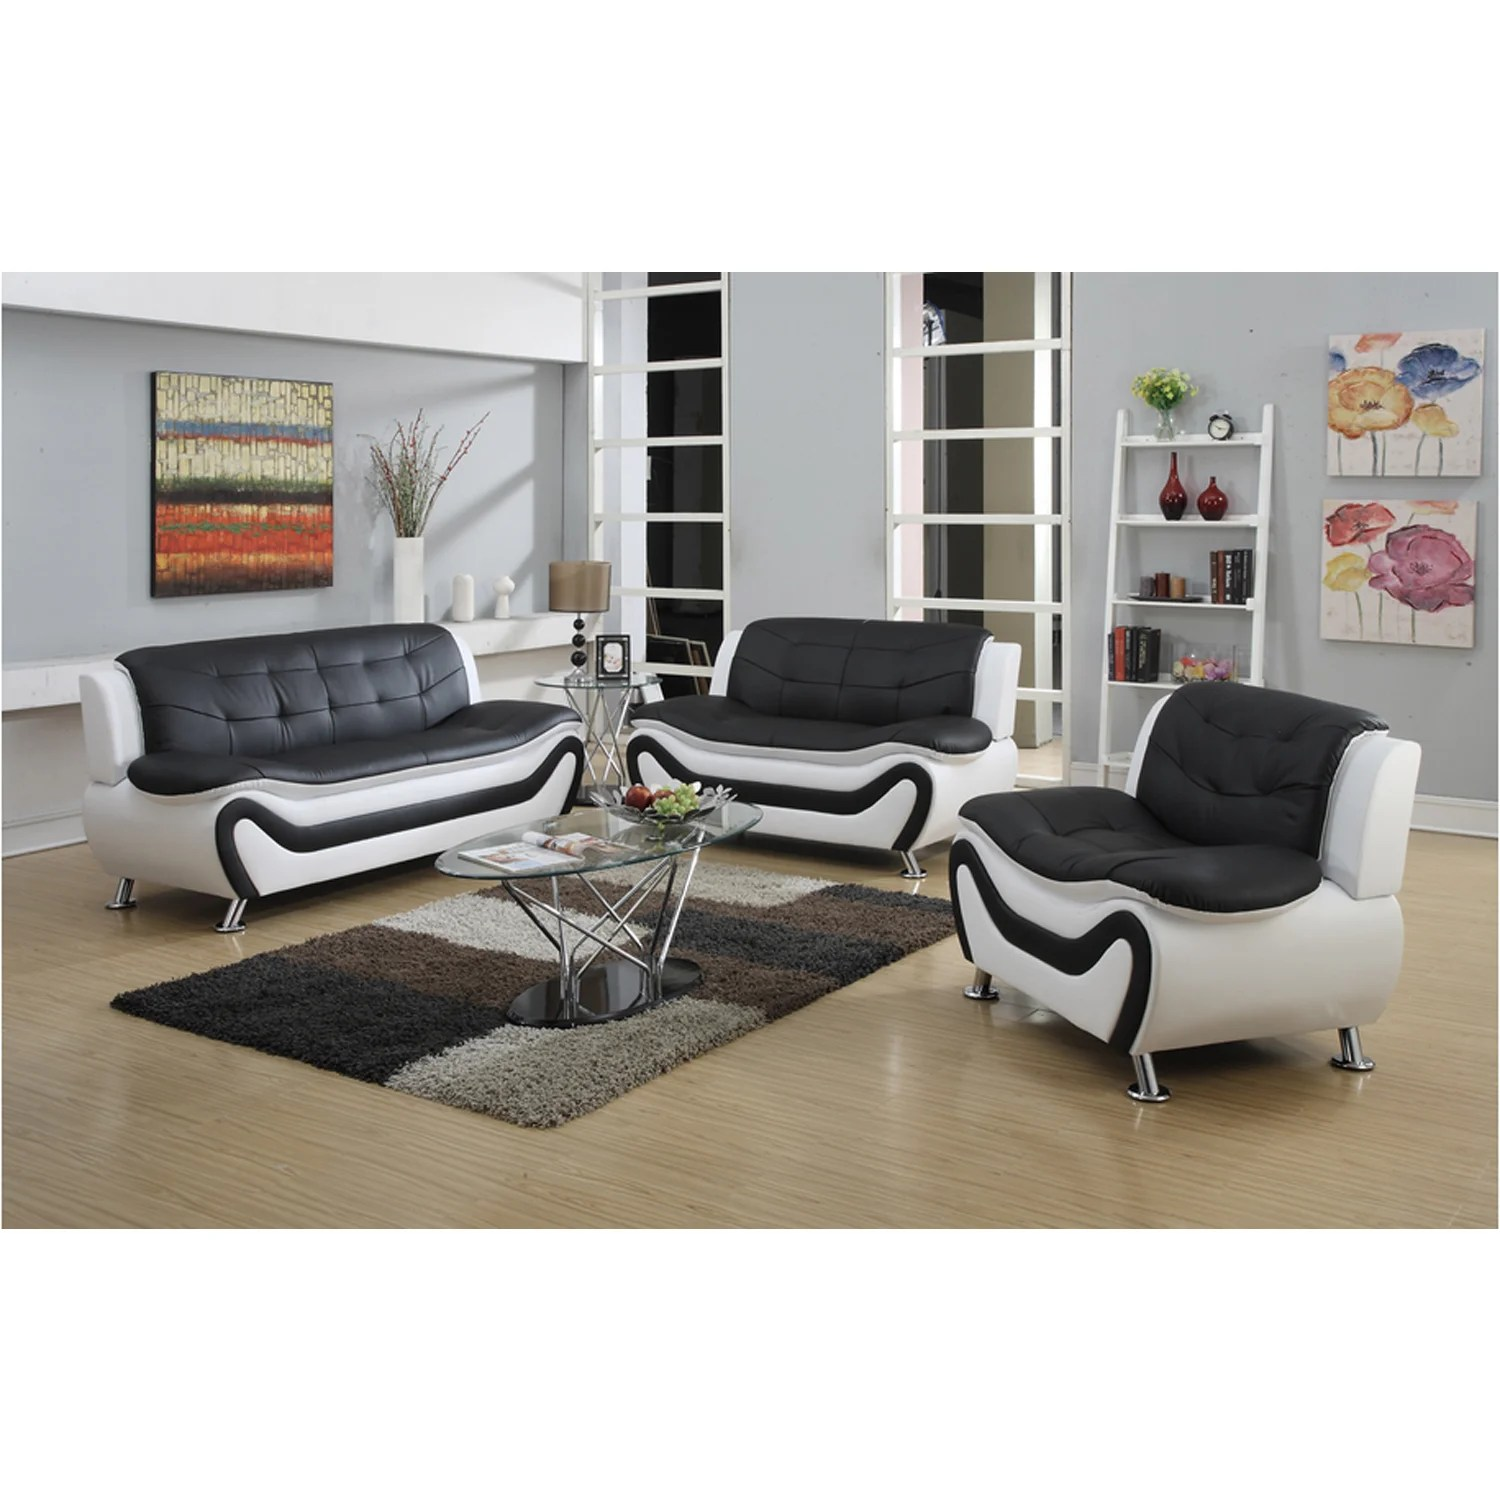 Modern Couch Set 3 Things You Need To Know About Buying A Modern